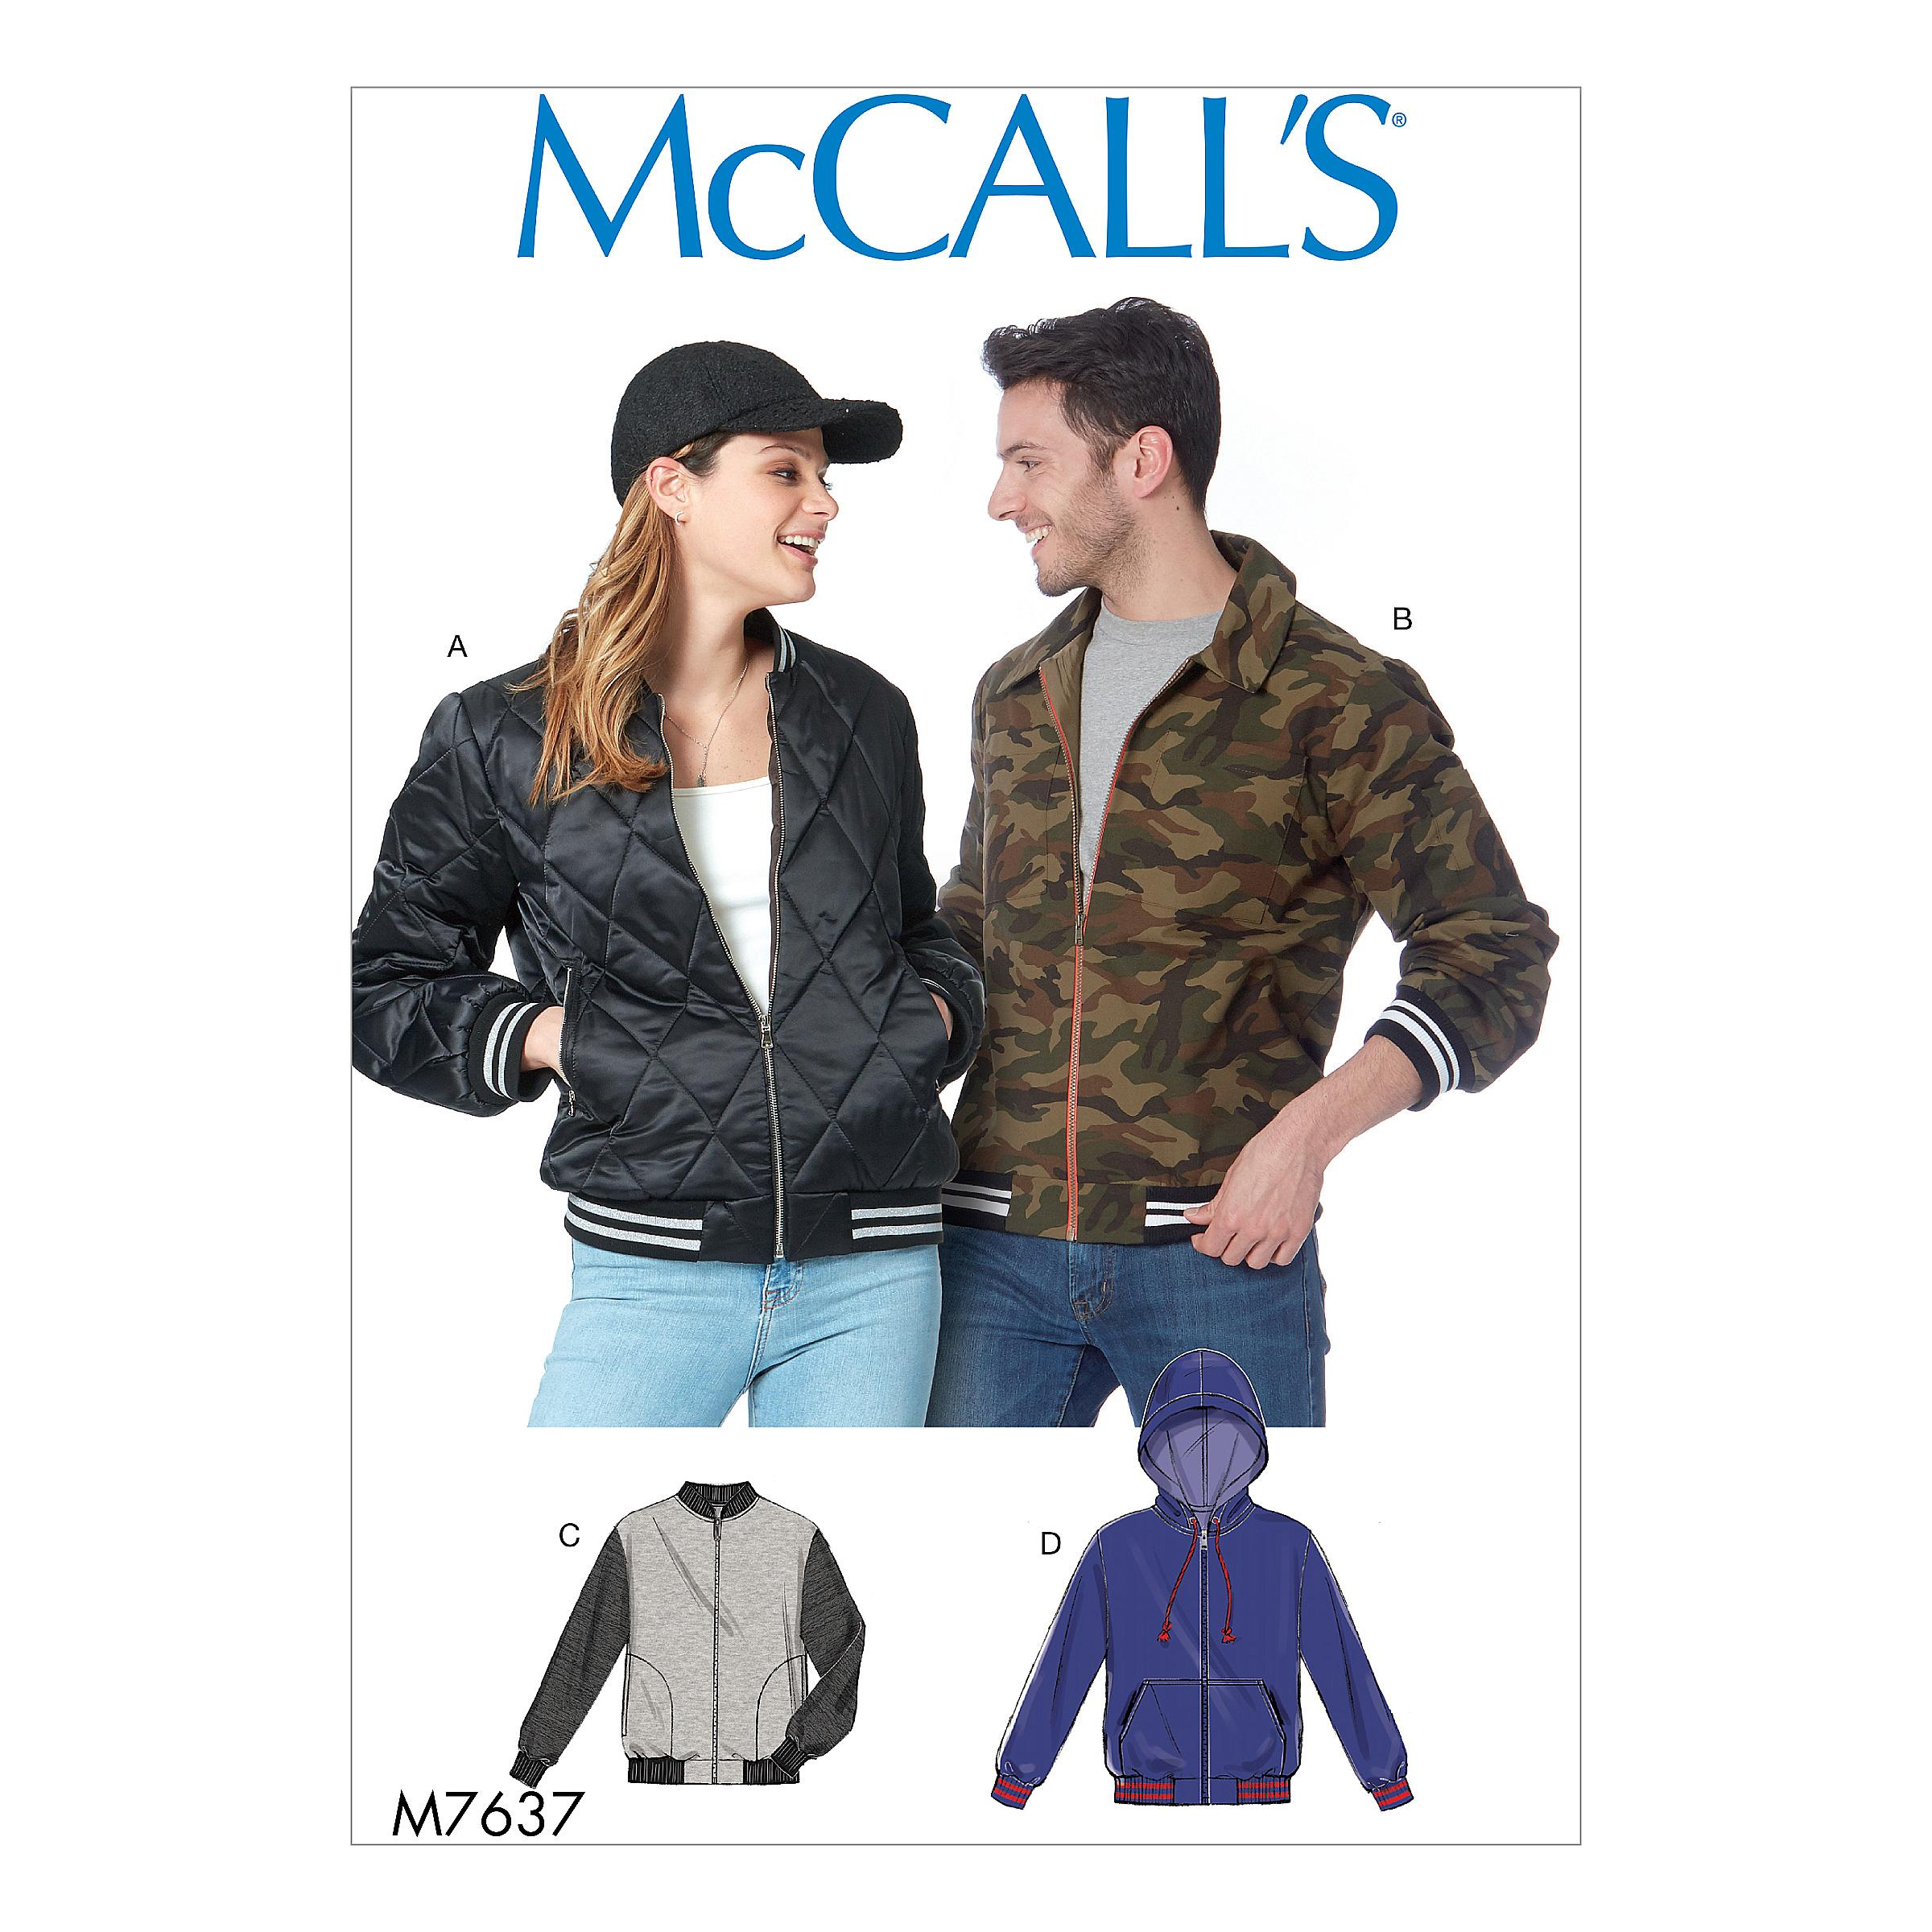 McCalls M7637 Misses Jackets & Vests, Men, Activewear